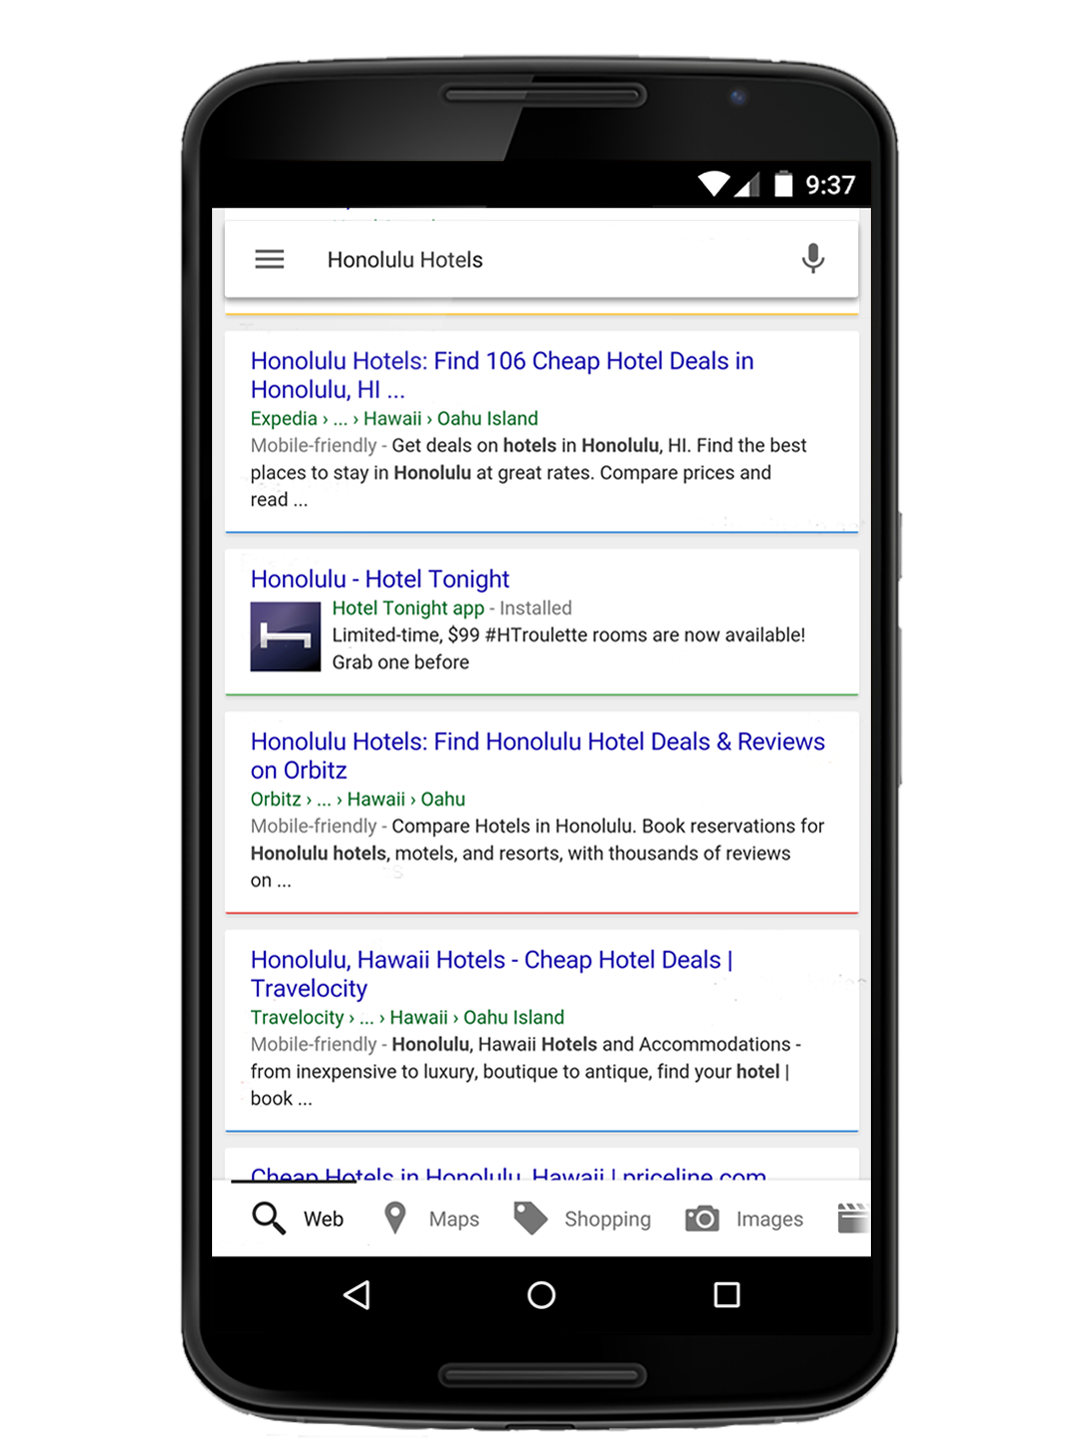 New ways to find (and stream) app content in Google Search